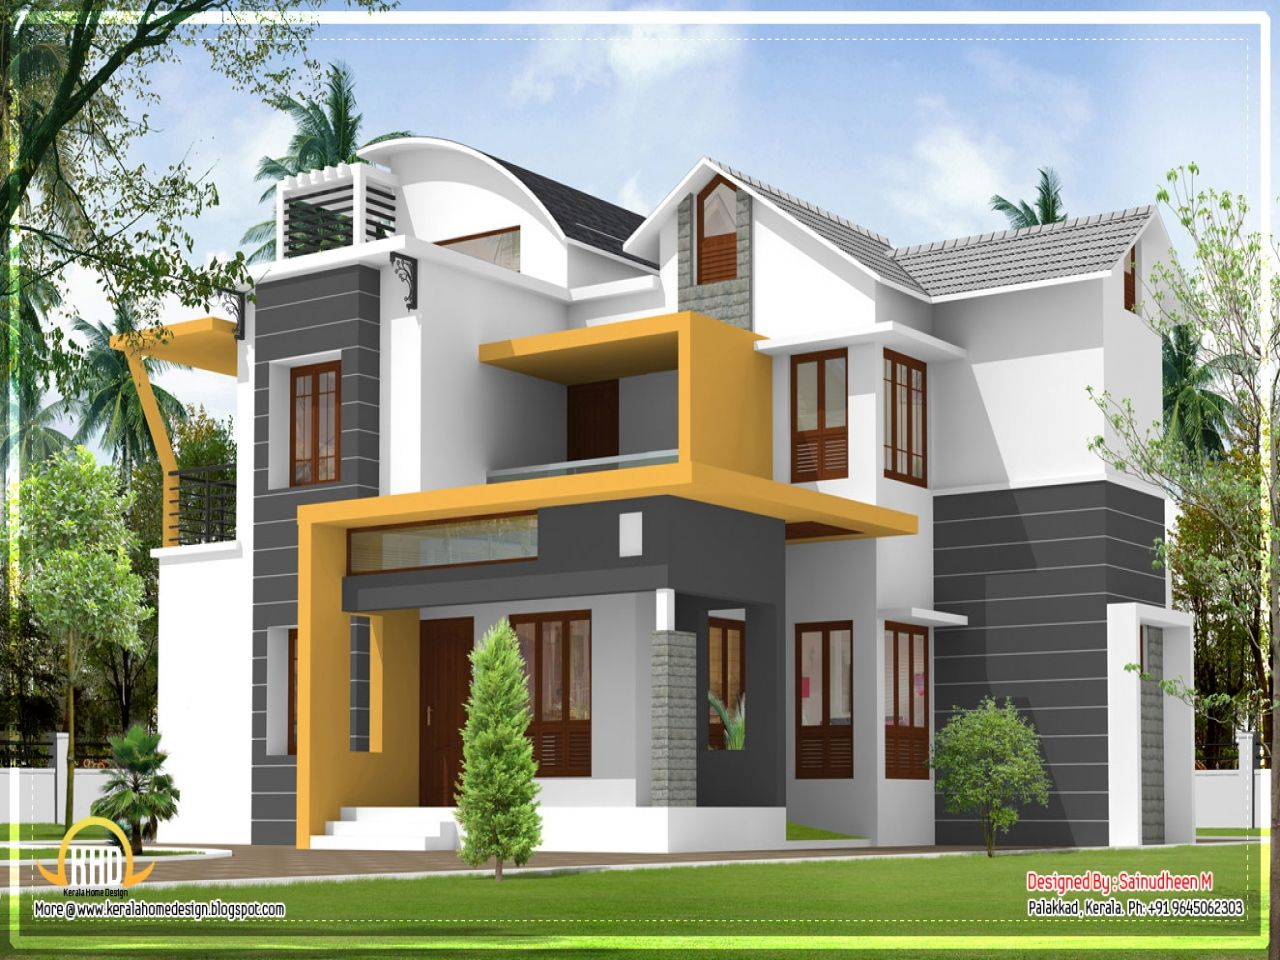 Exterior Design Of Small House In India Kerala House Design